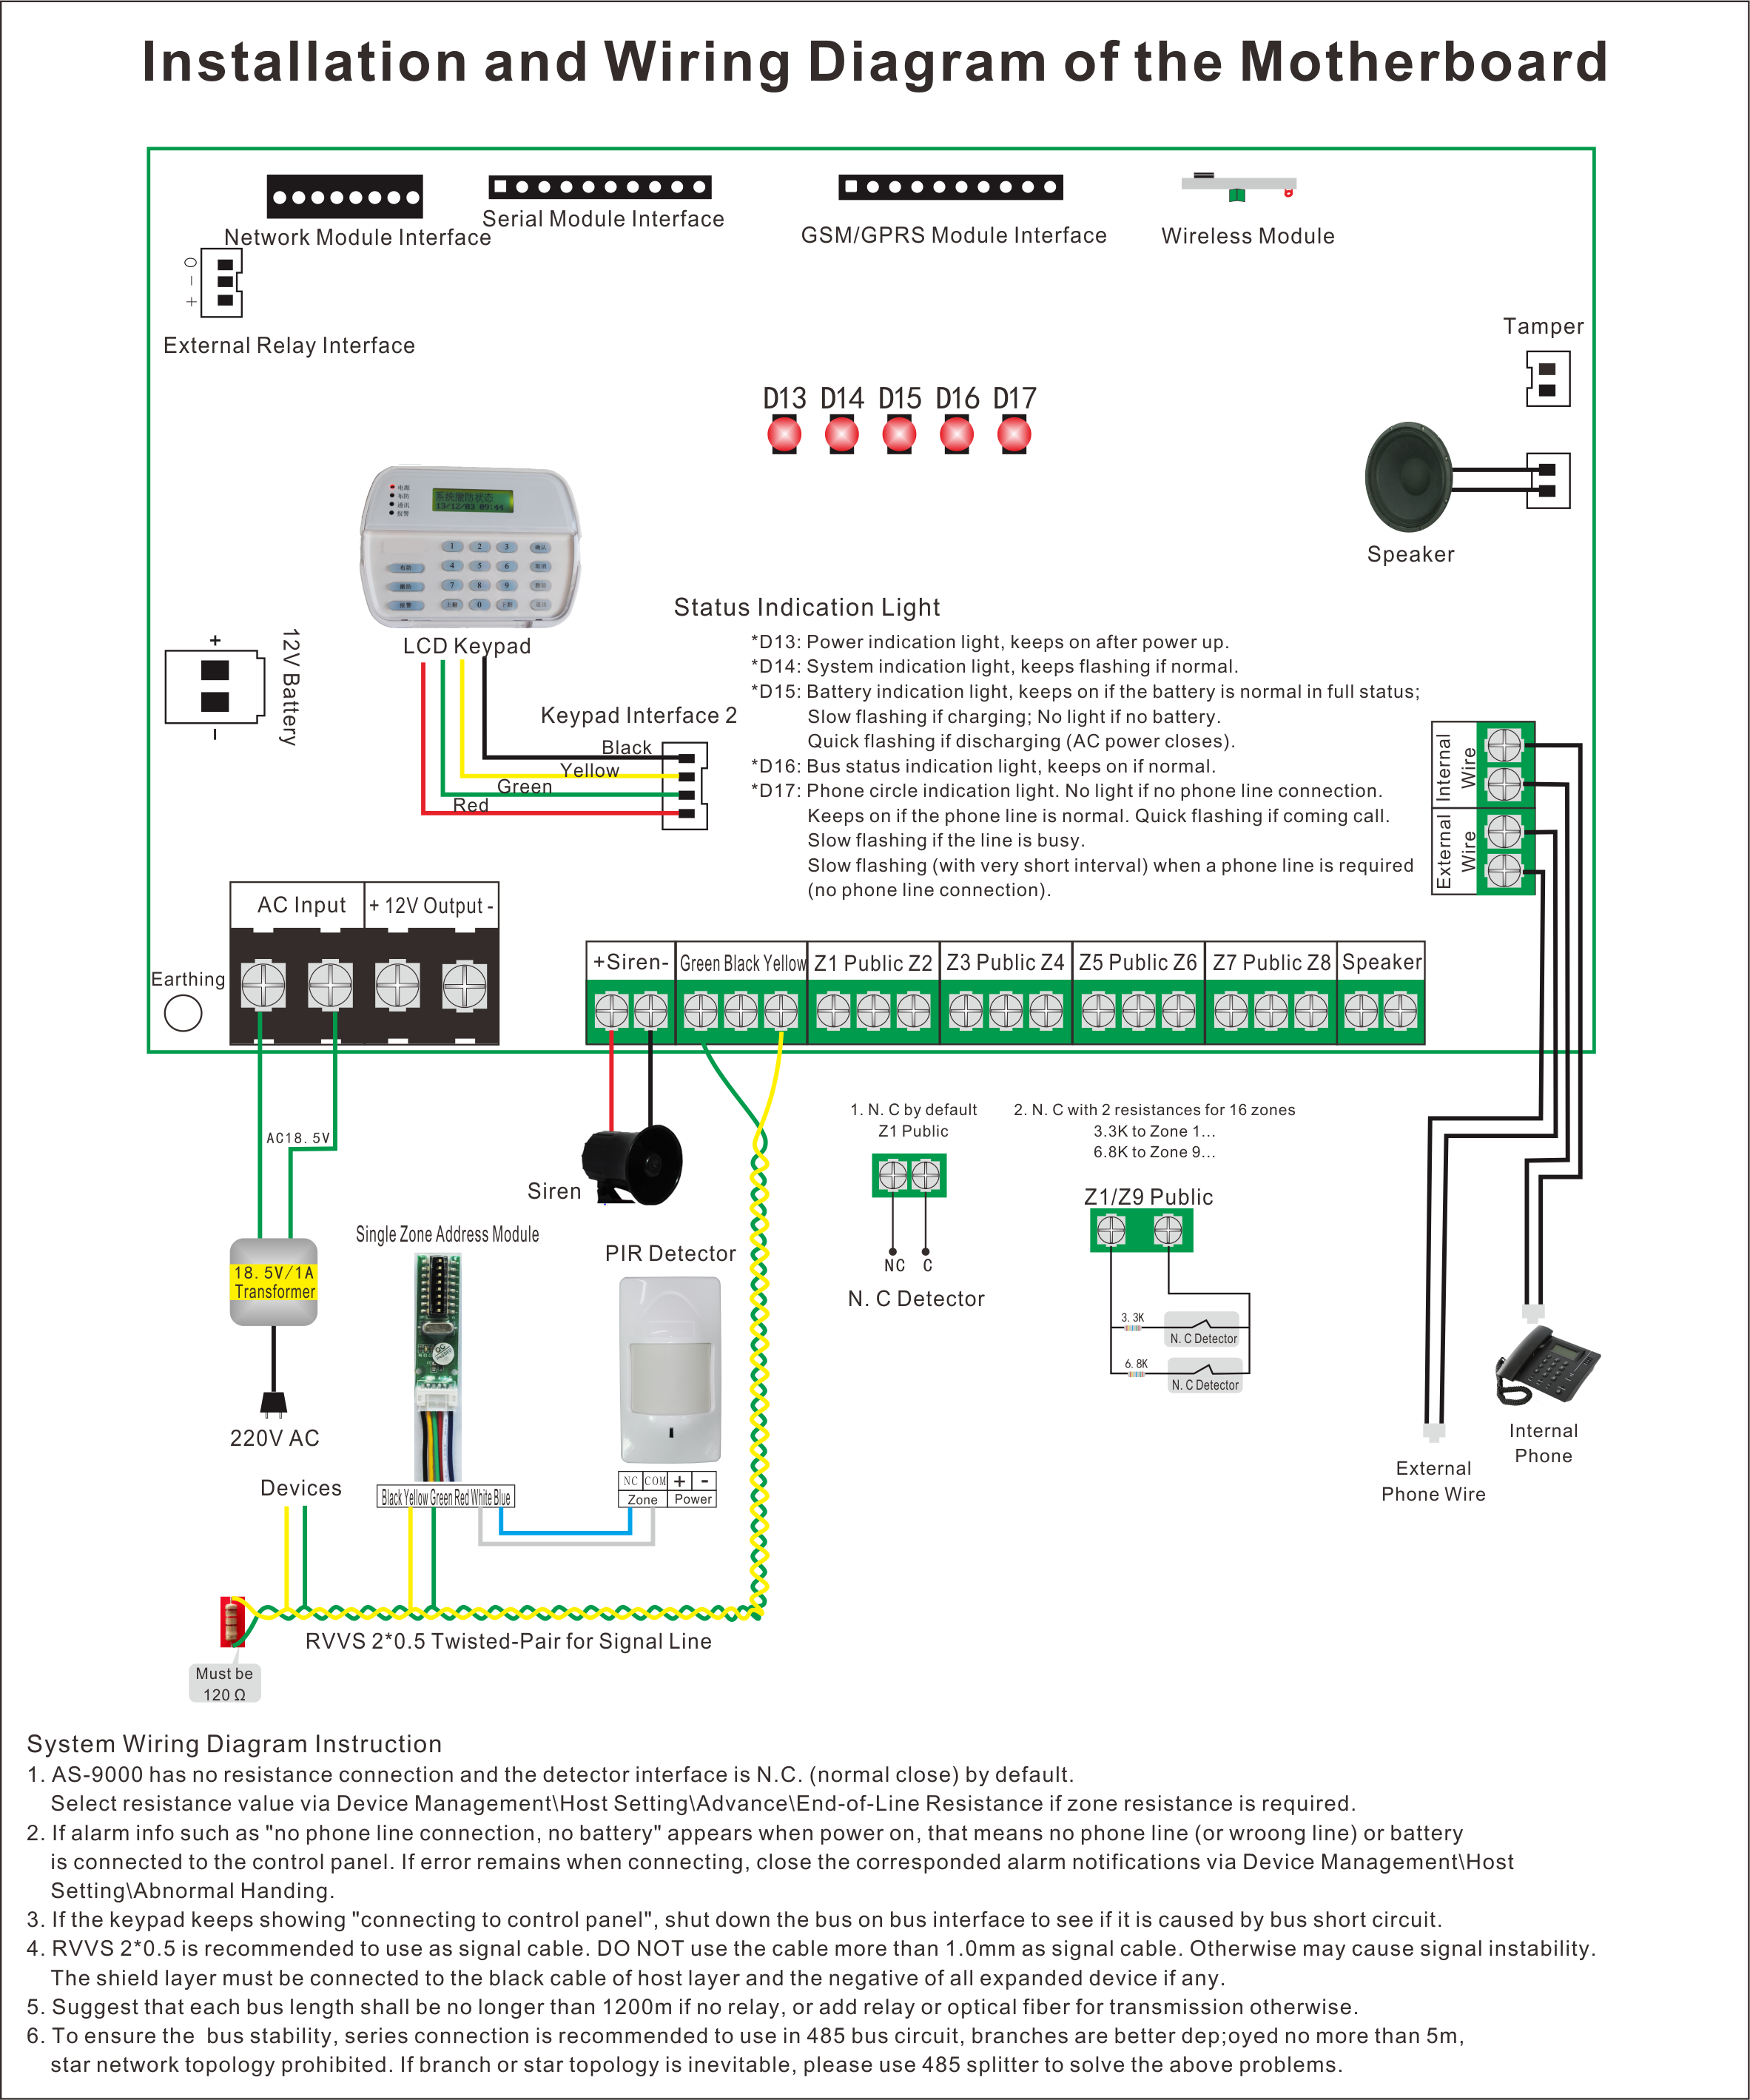 AS-9000 Series Alarm Control Host Installation and Wiring Diagram